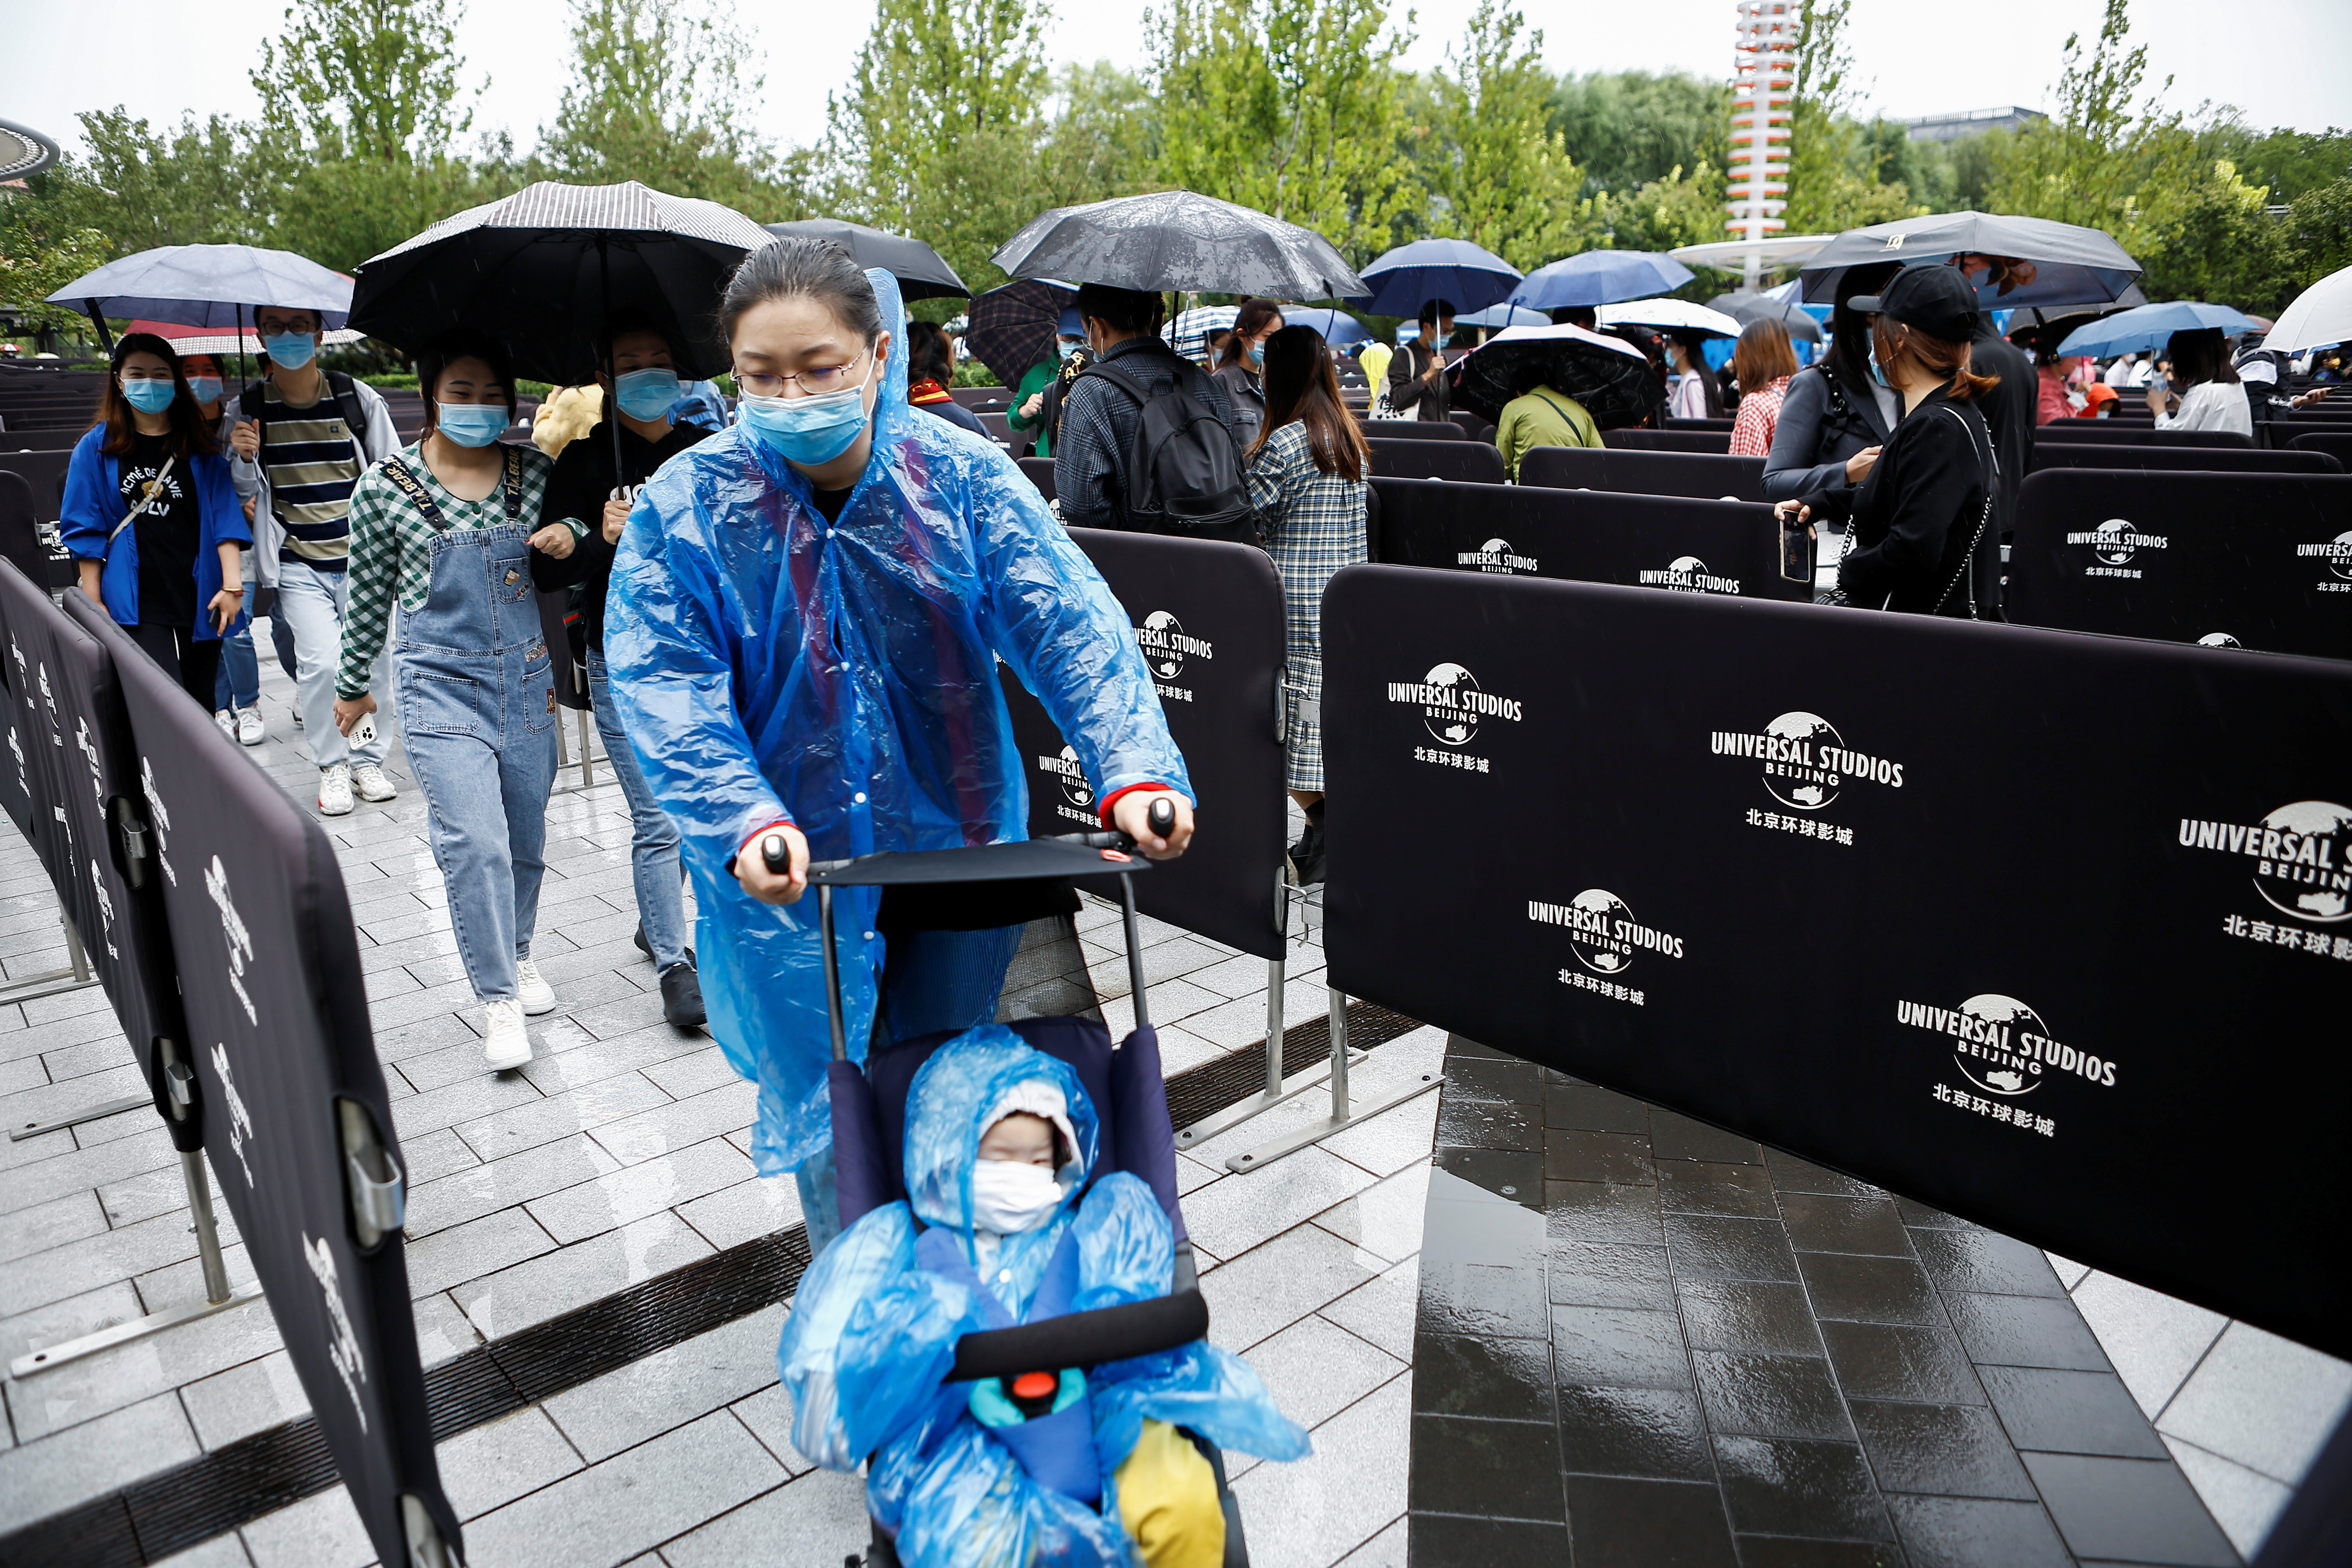 Visitors enter the Universal Beijing Resort as the Universal Studios theme park opens to the general public, in Beijing, China, September 20, 2021. REUTERS/Florence Lo